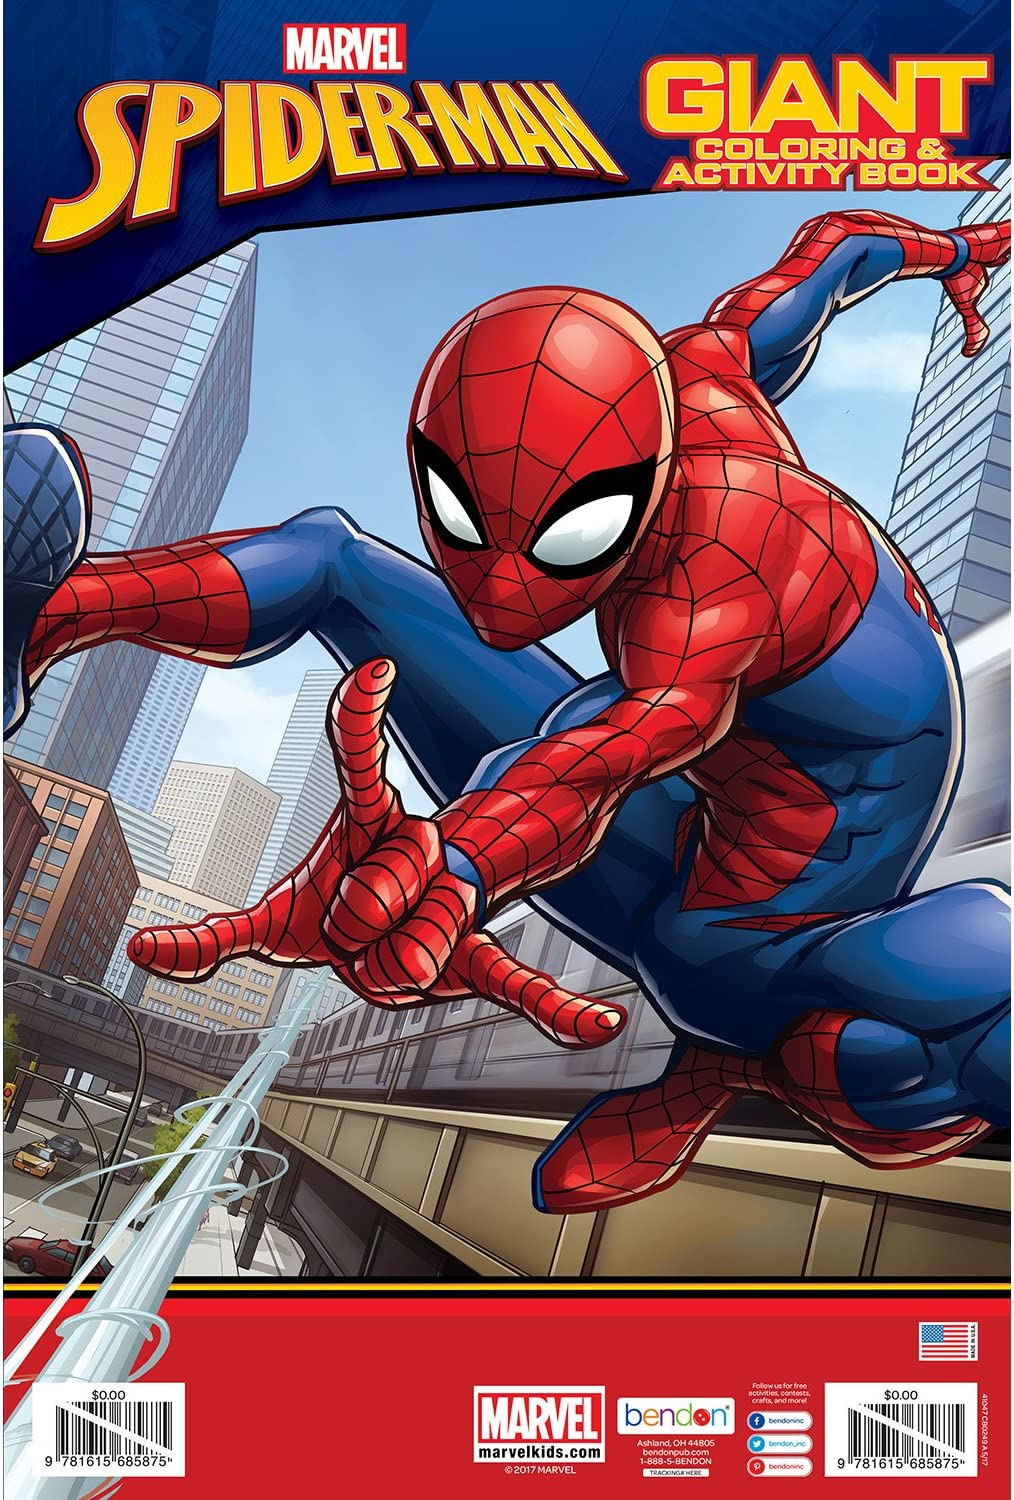 Bendon Spider-Man Giant Coloring and Activity Book